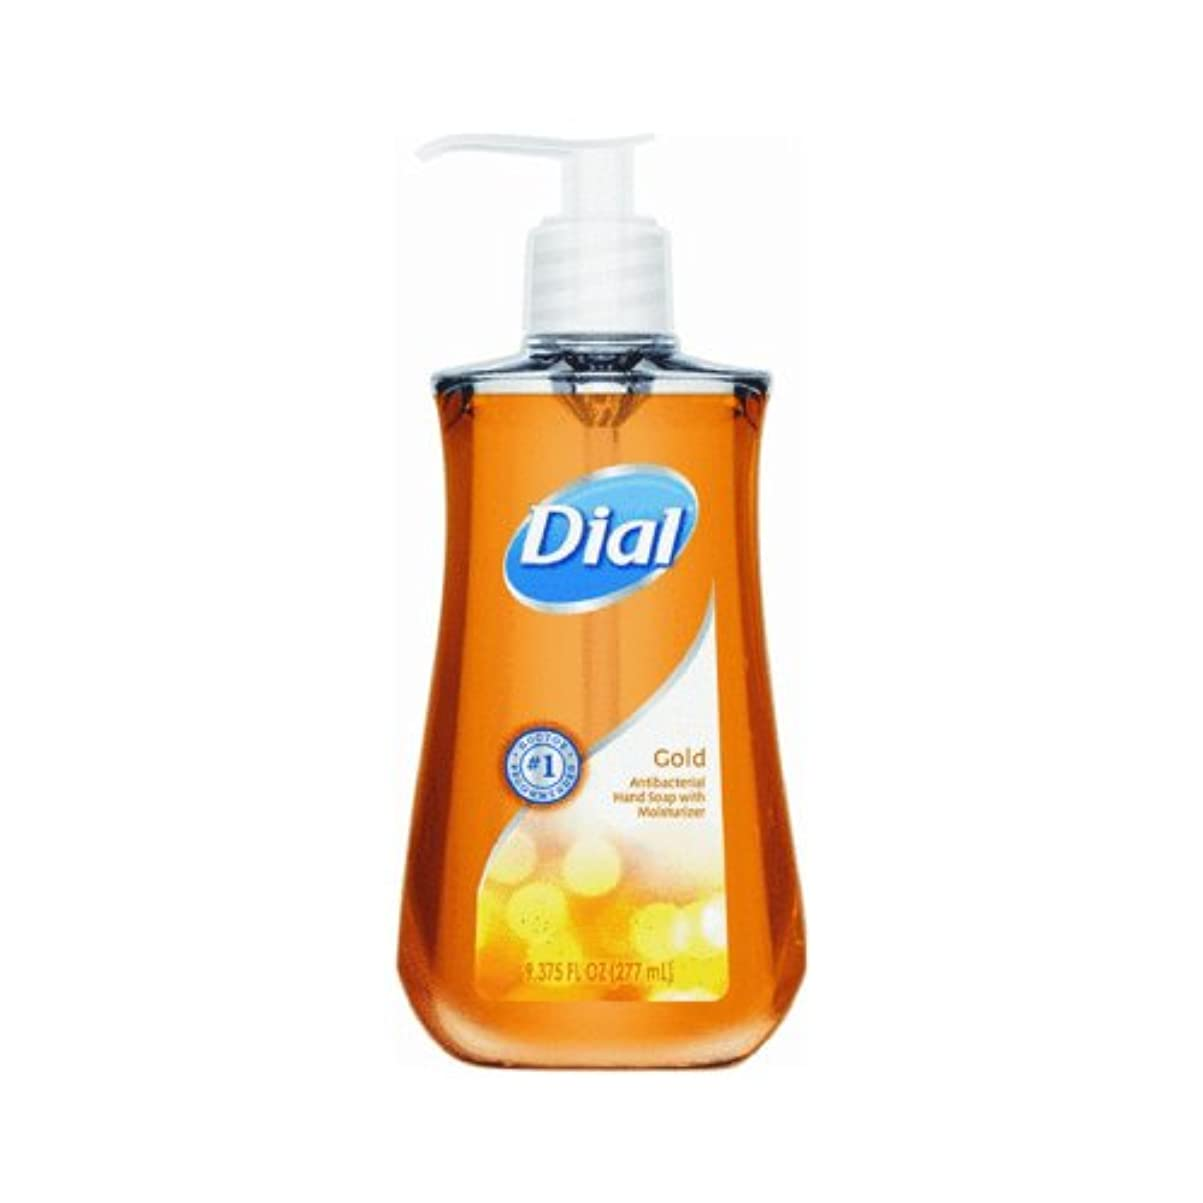 ひいきにする残る相互Dial Antibacterial Hand Soap, Gold with Moisturizer 280 ml (Pack of 12) (並行輸入品)